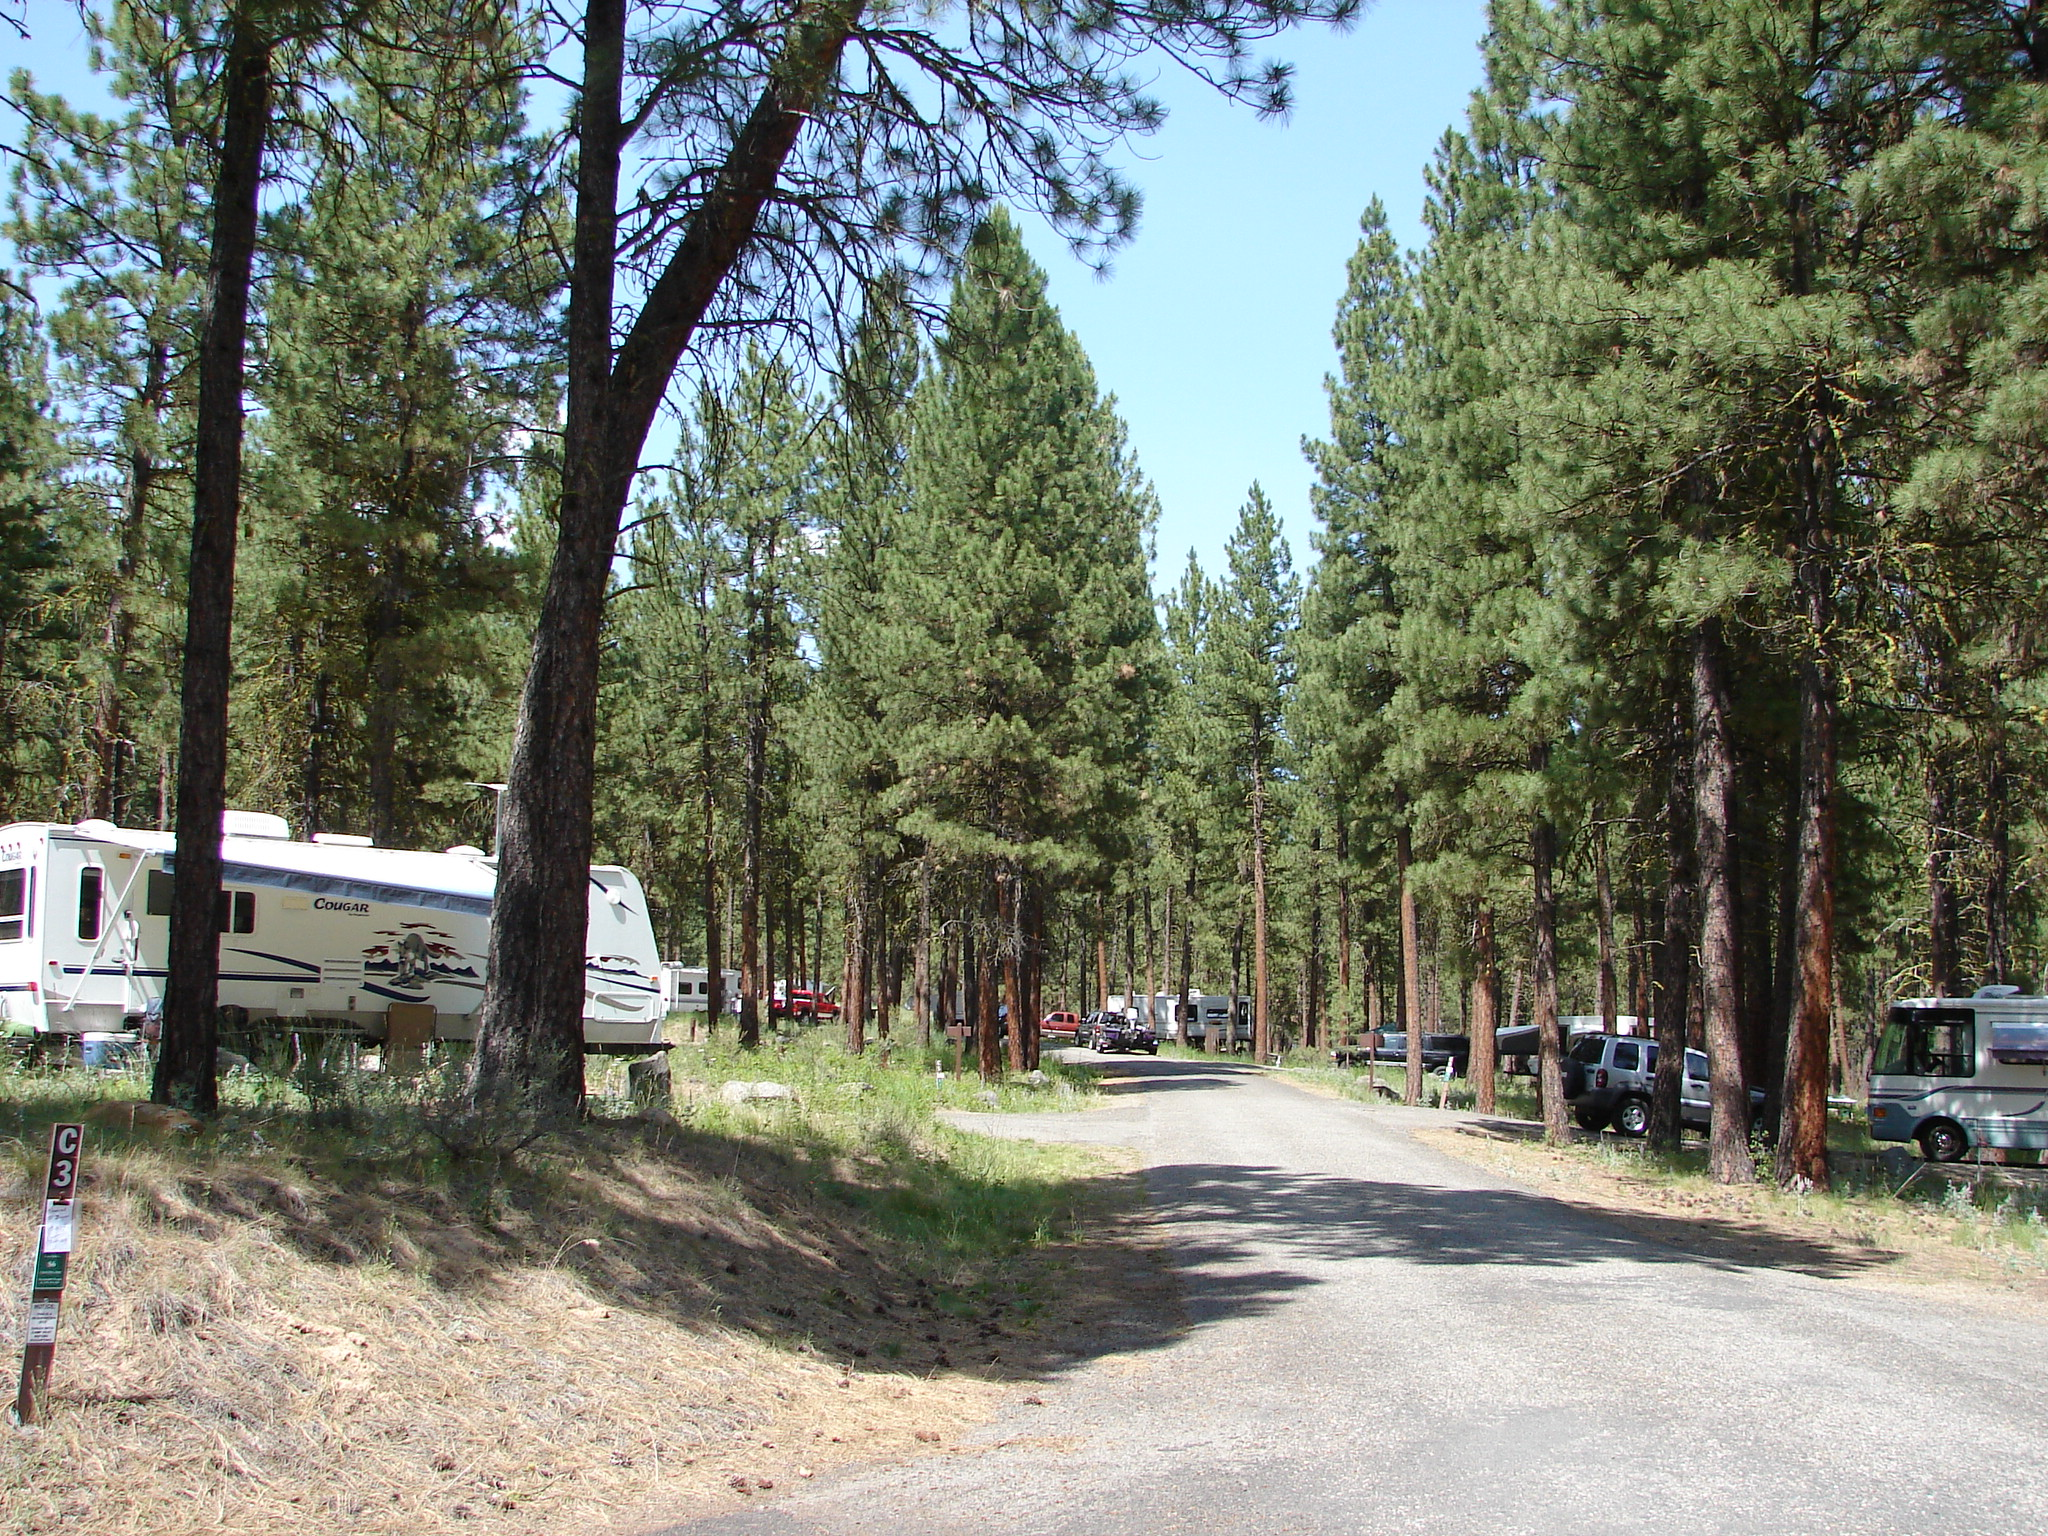 RV parked in open pine forest at Union Creek Campground